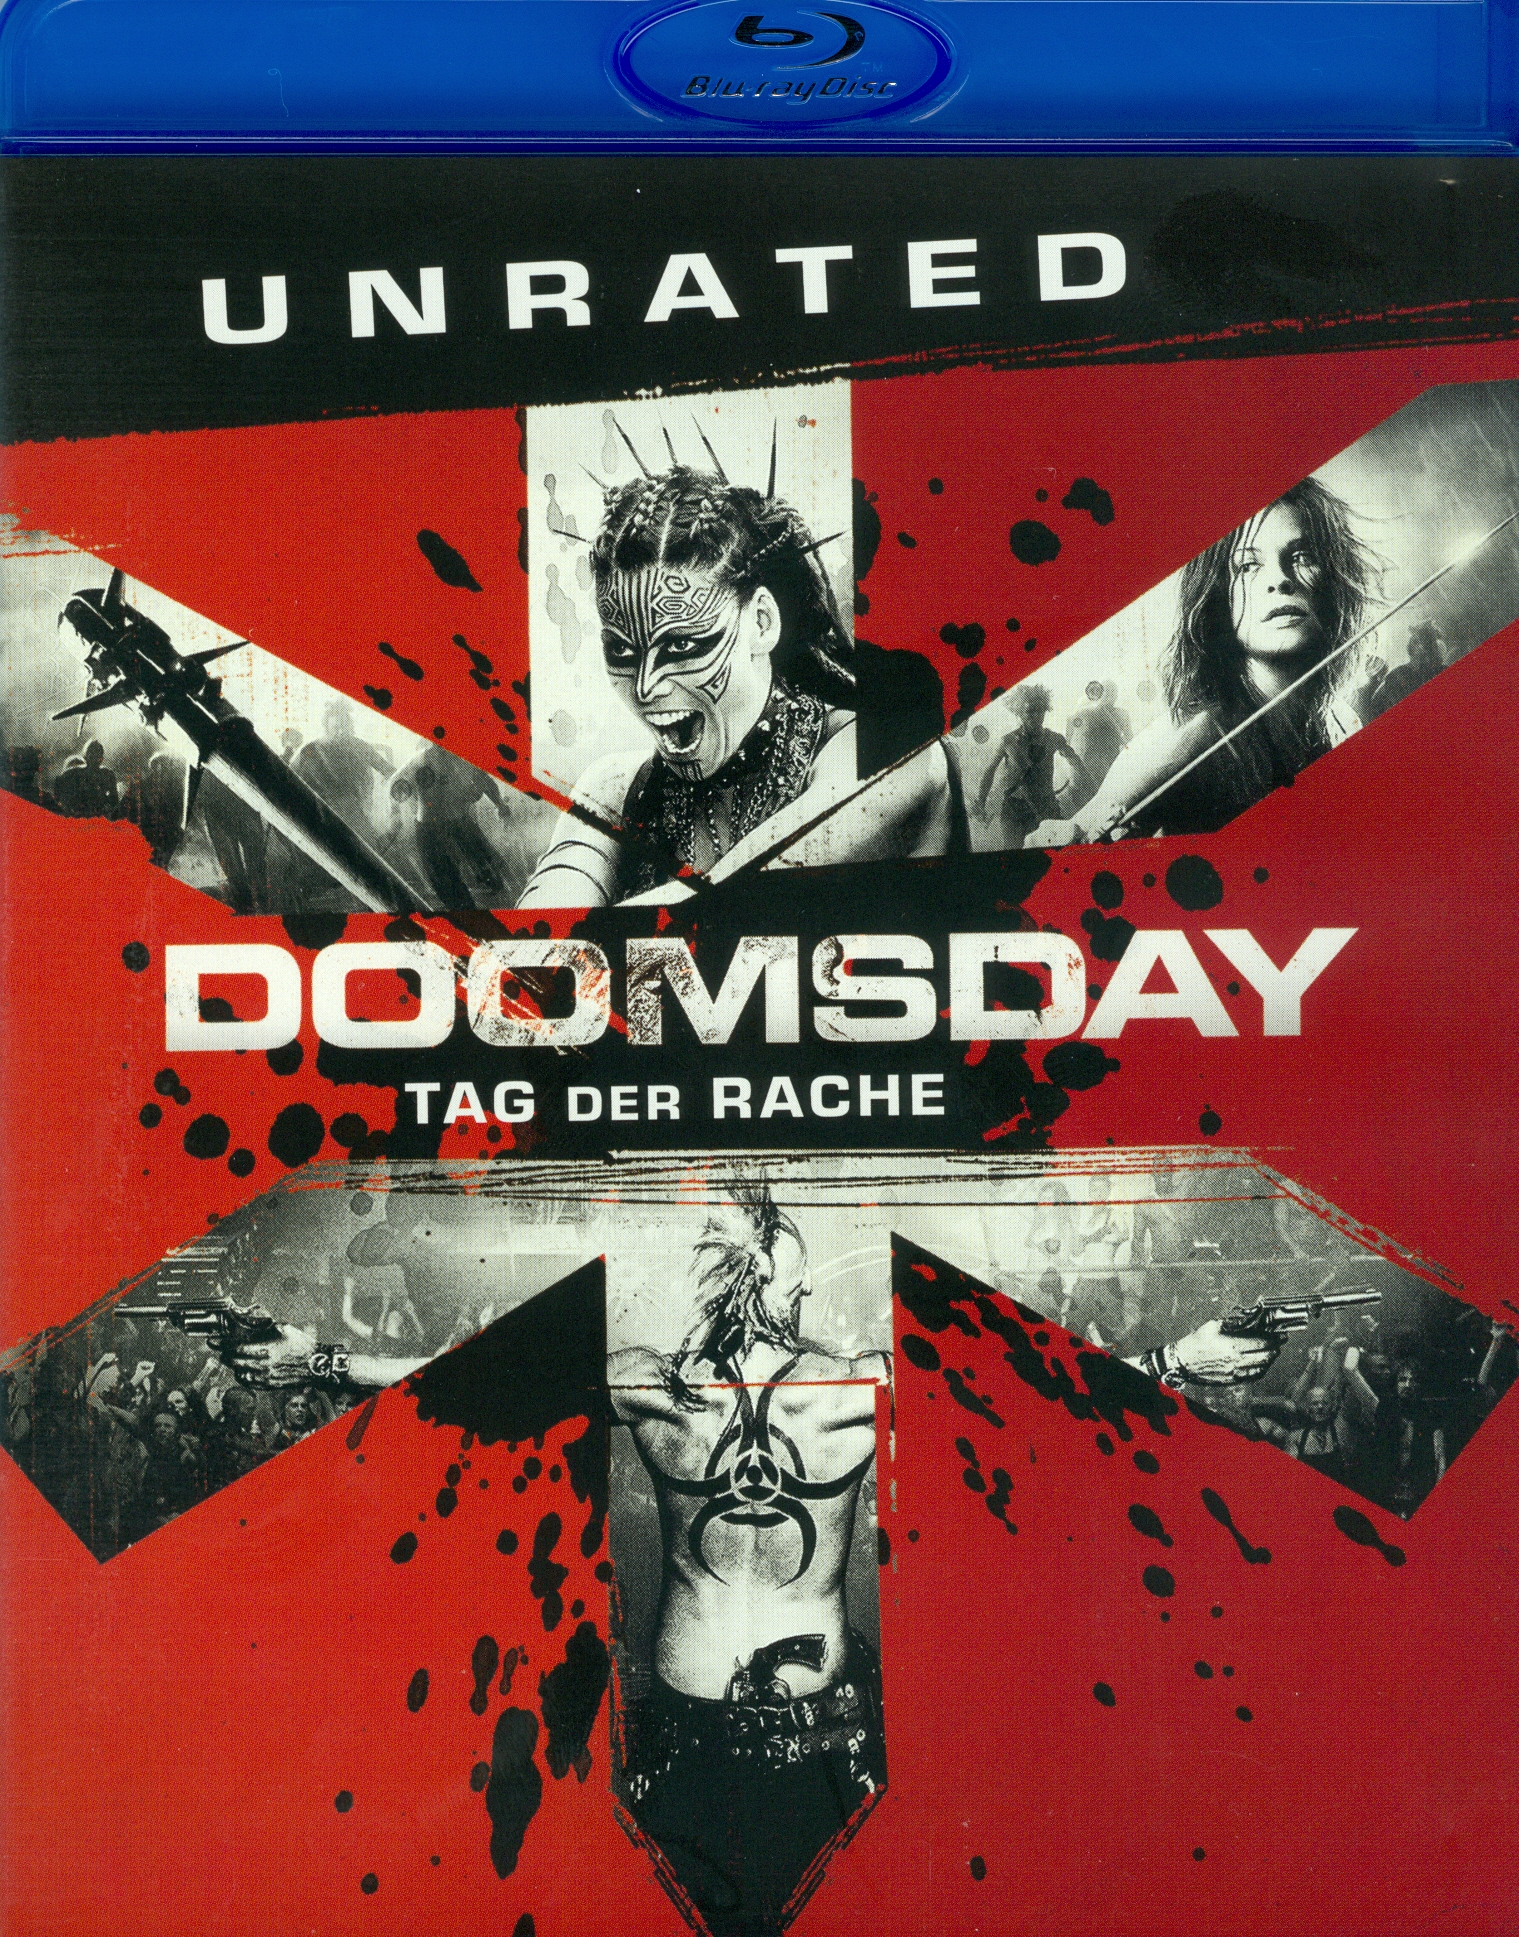 Doomsday - Tag der Rache (2008) - (Uncut, Unrated)